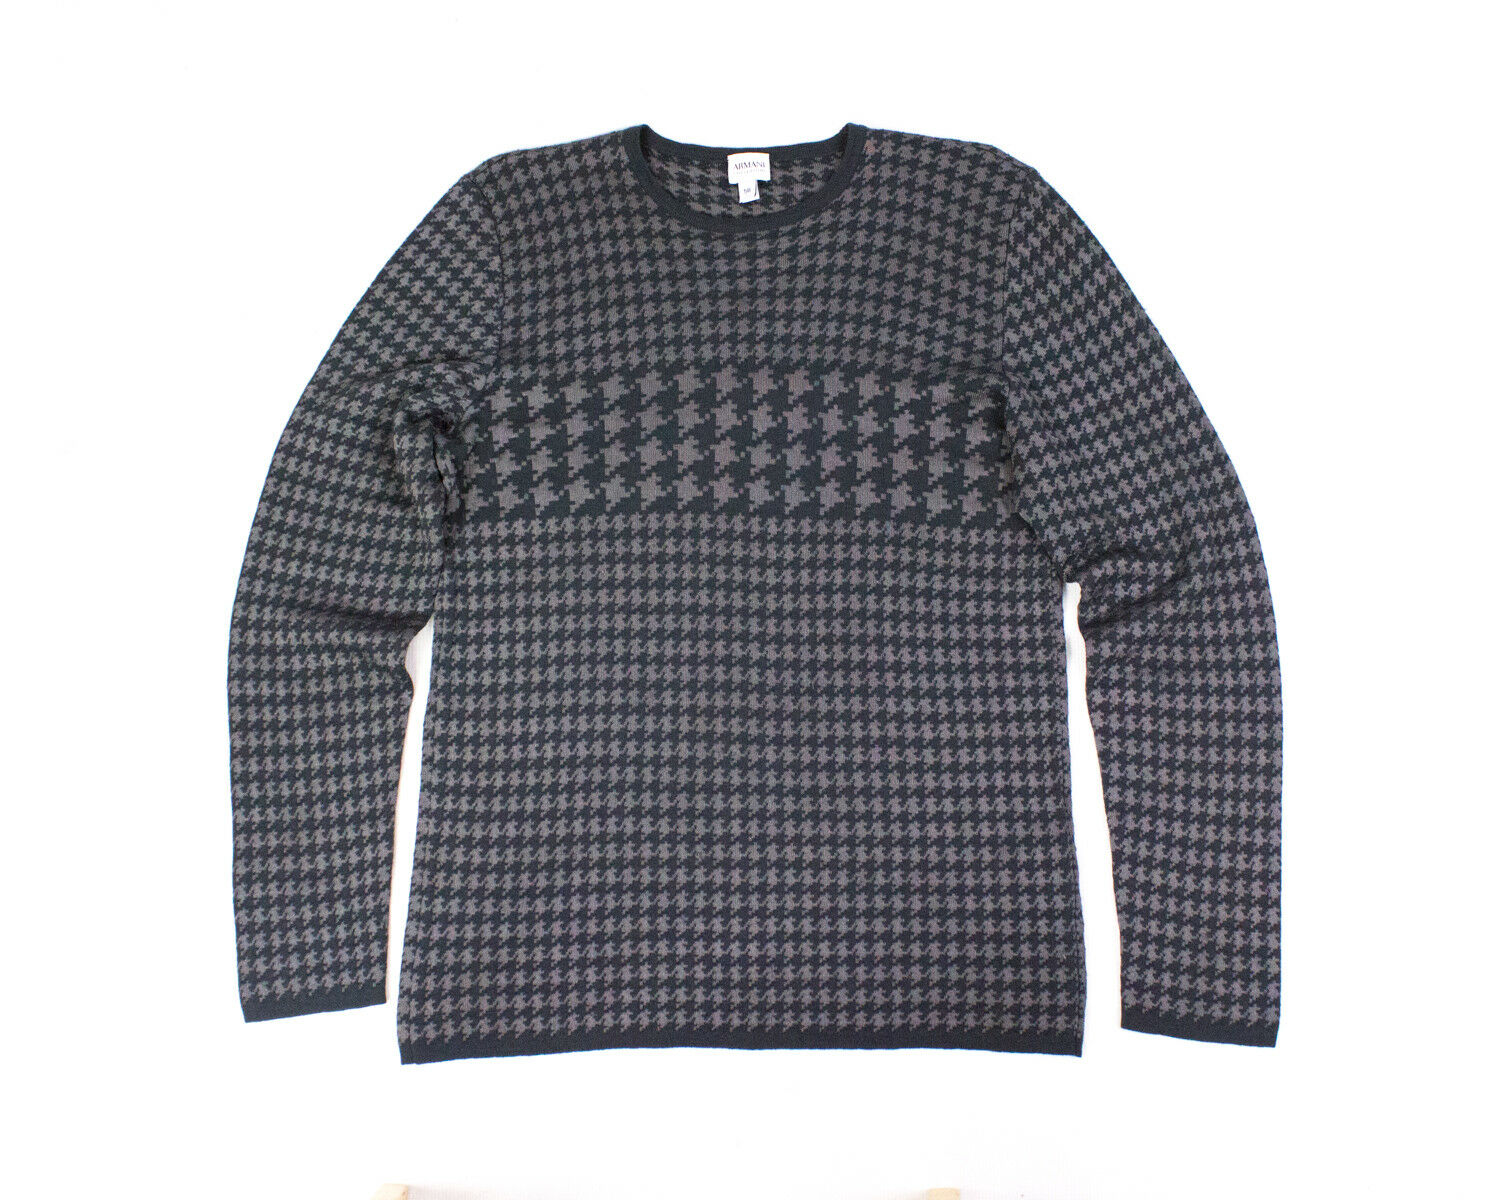 ARMANI COLLEZIONI men's Wool Blend Houndstooth Pattern Sweater, SIZE XL